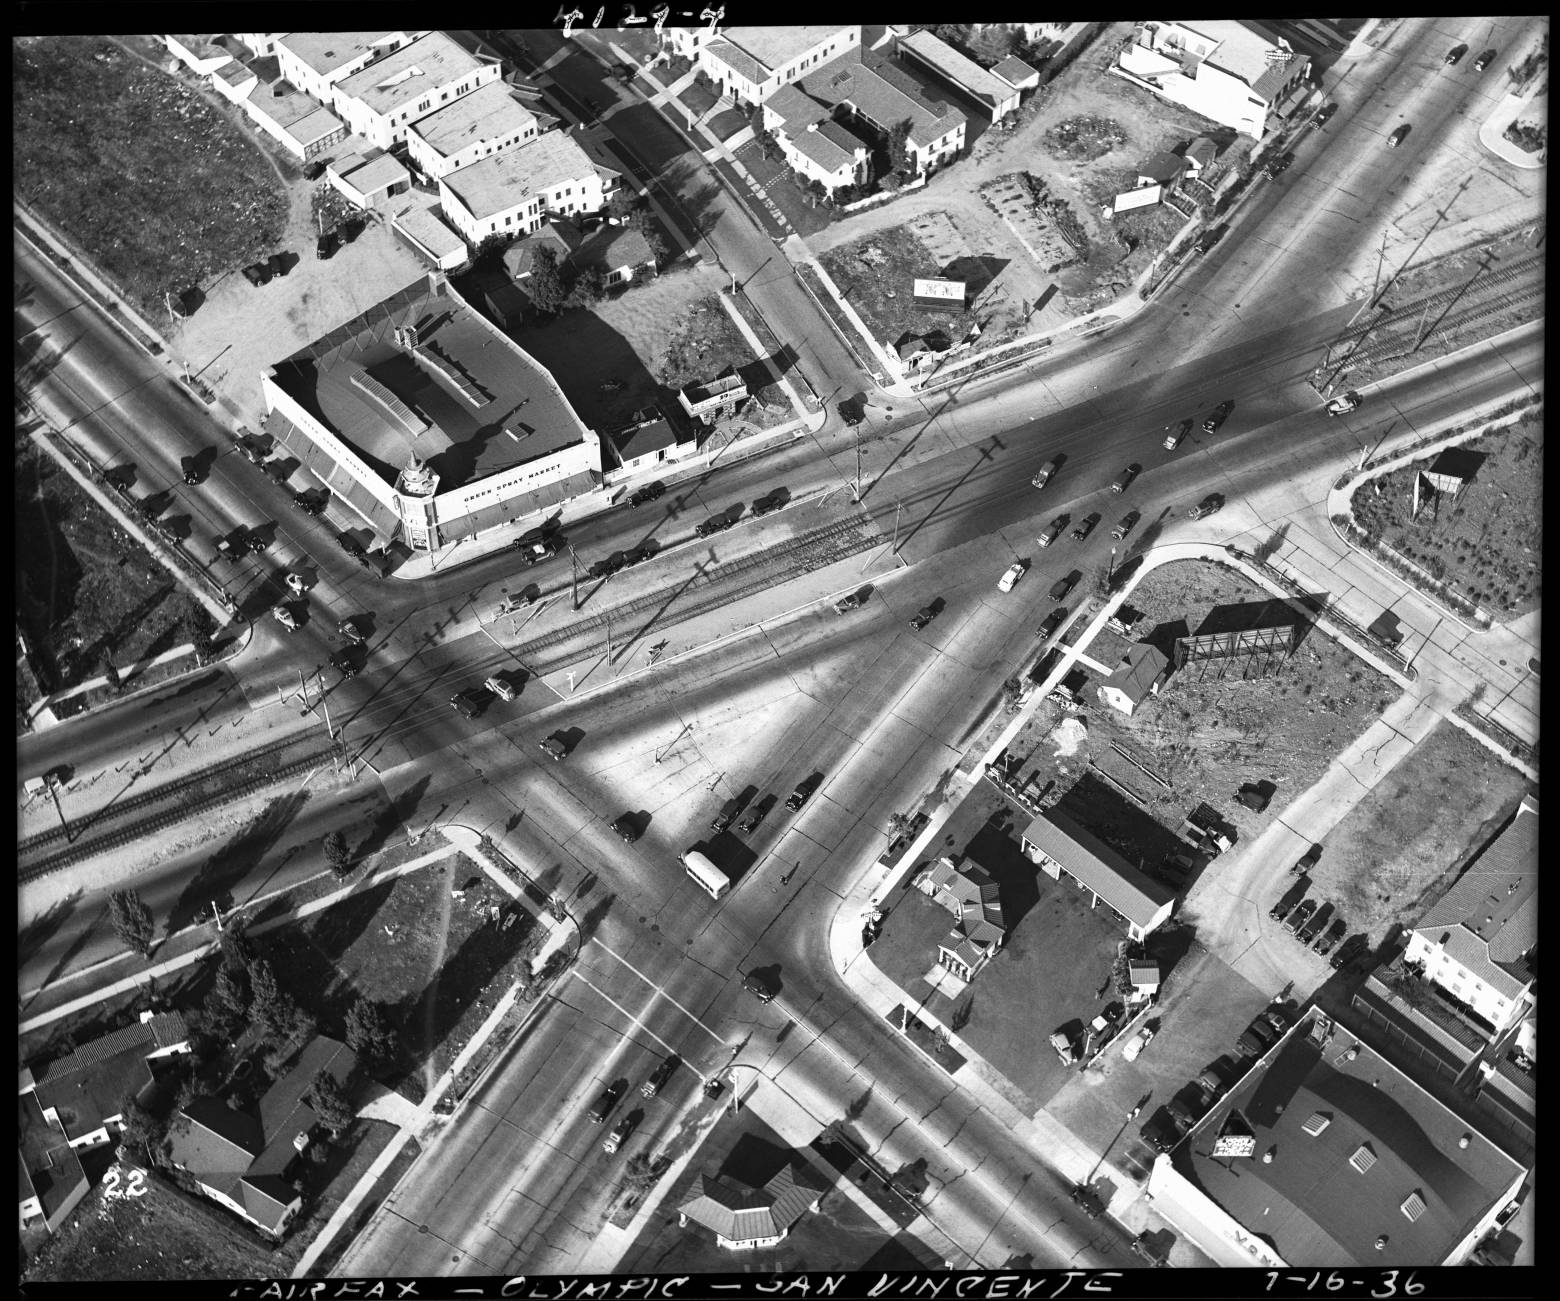 Many streetcar boulevards cut across the street grid at odd angles, creating complicated intersections, like that of San Vicente, Fairfax, and Olympic, seen here in 1936. Courtesy of the Automobile Club of Southern California Archives.